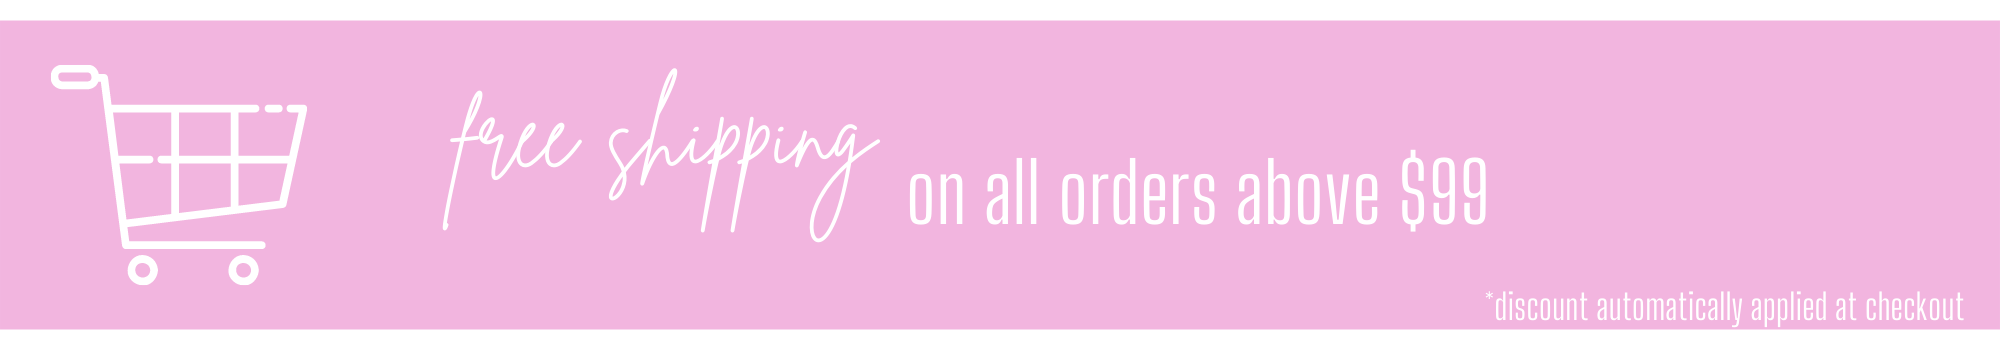 Pinkiee Boutique